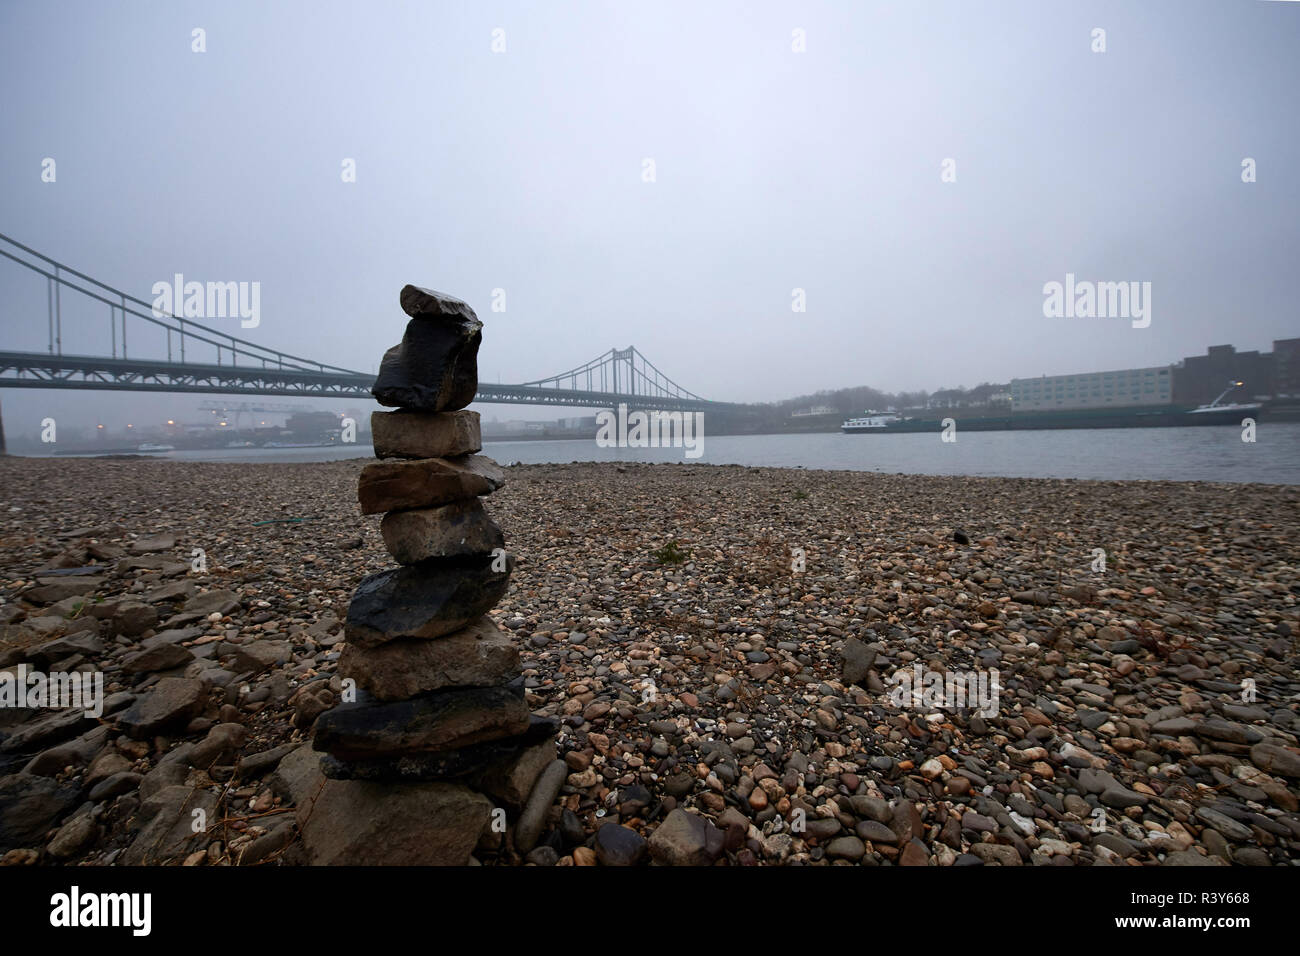 Duisburg, Germany. 24th Nov, 2018. A small stone tower stands in the riverbed of the Rhine between Duisburg and Krefeld-Uerdingen. After isolated rainfalls had provided the Rhine with some water, the water level is now falling again according to the Duisburg-Rhine Waterways and Shipping Authority. Credit: Bernd Thissen/dpa/Alamy Live News - Stock Image